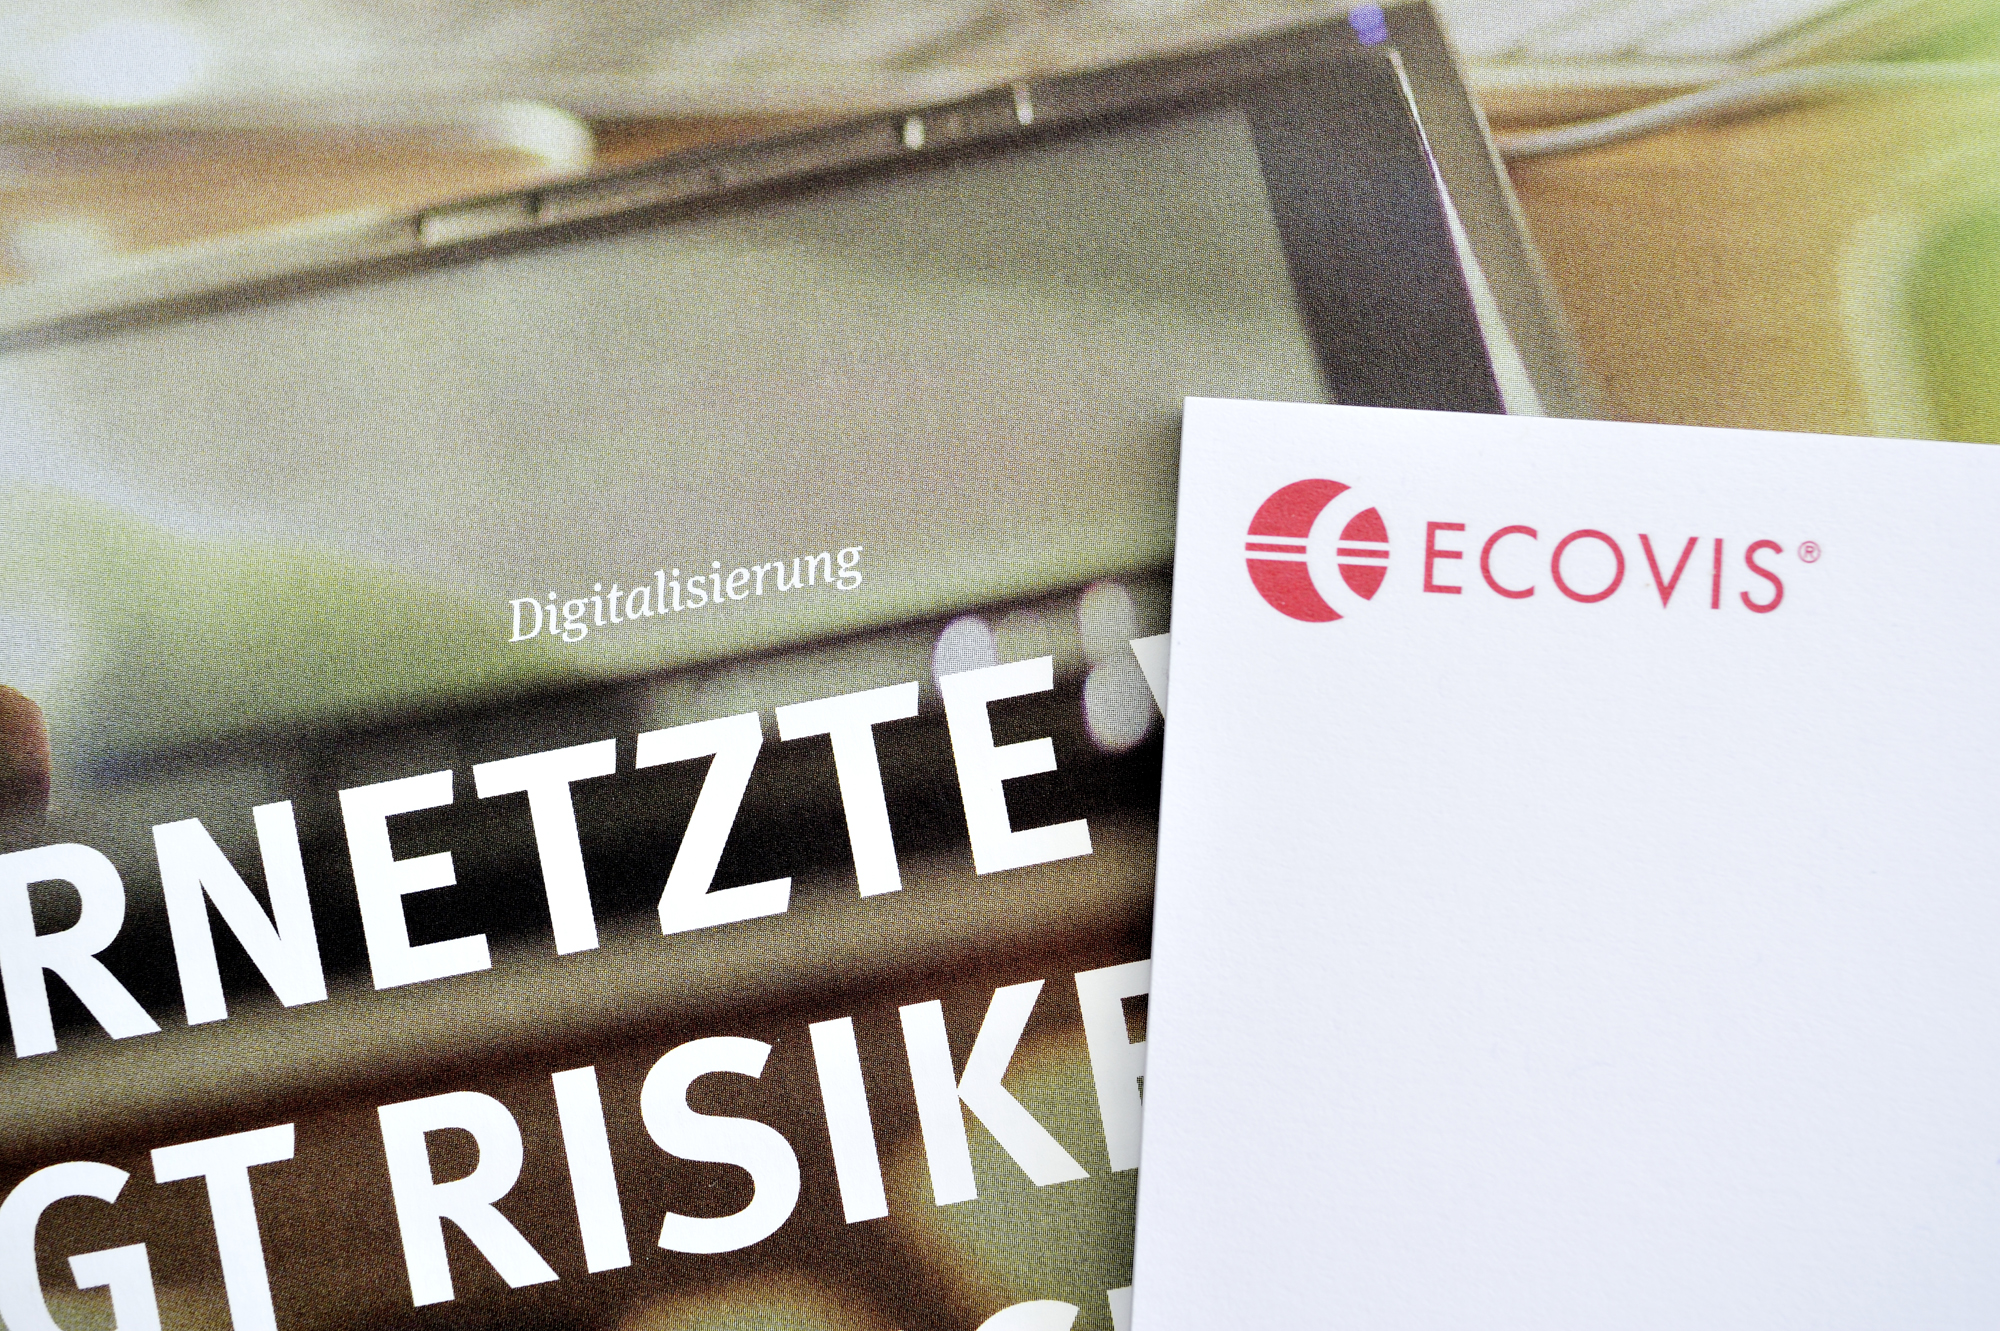 From ECOVIS Network: The Czech Republic Controls Non-Compliance with European Data Protection Regulations